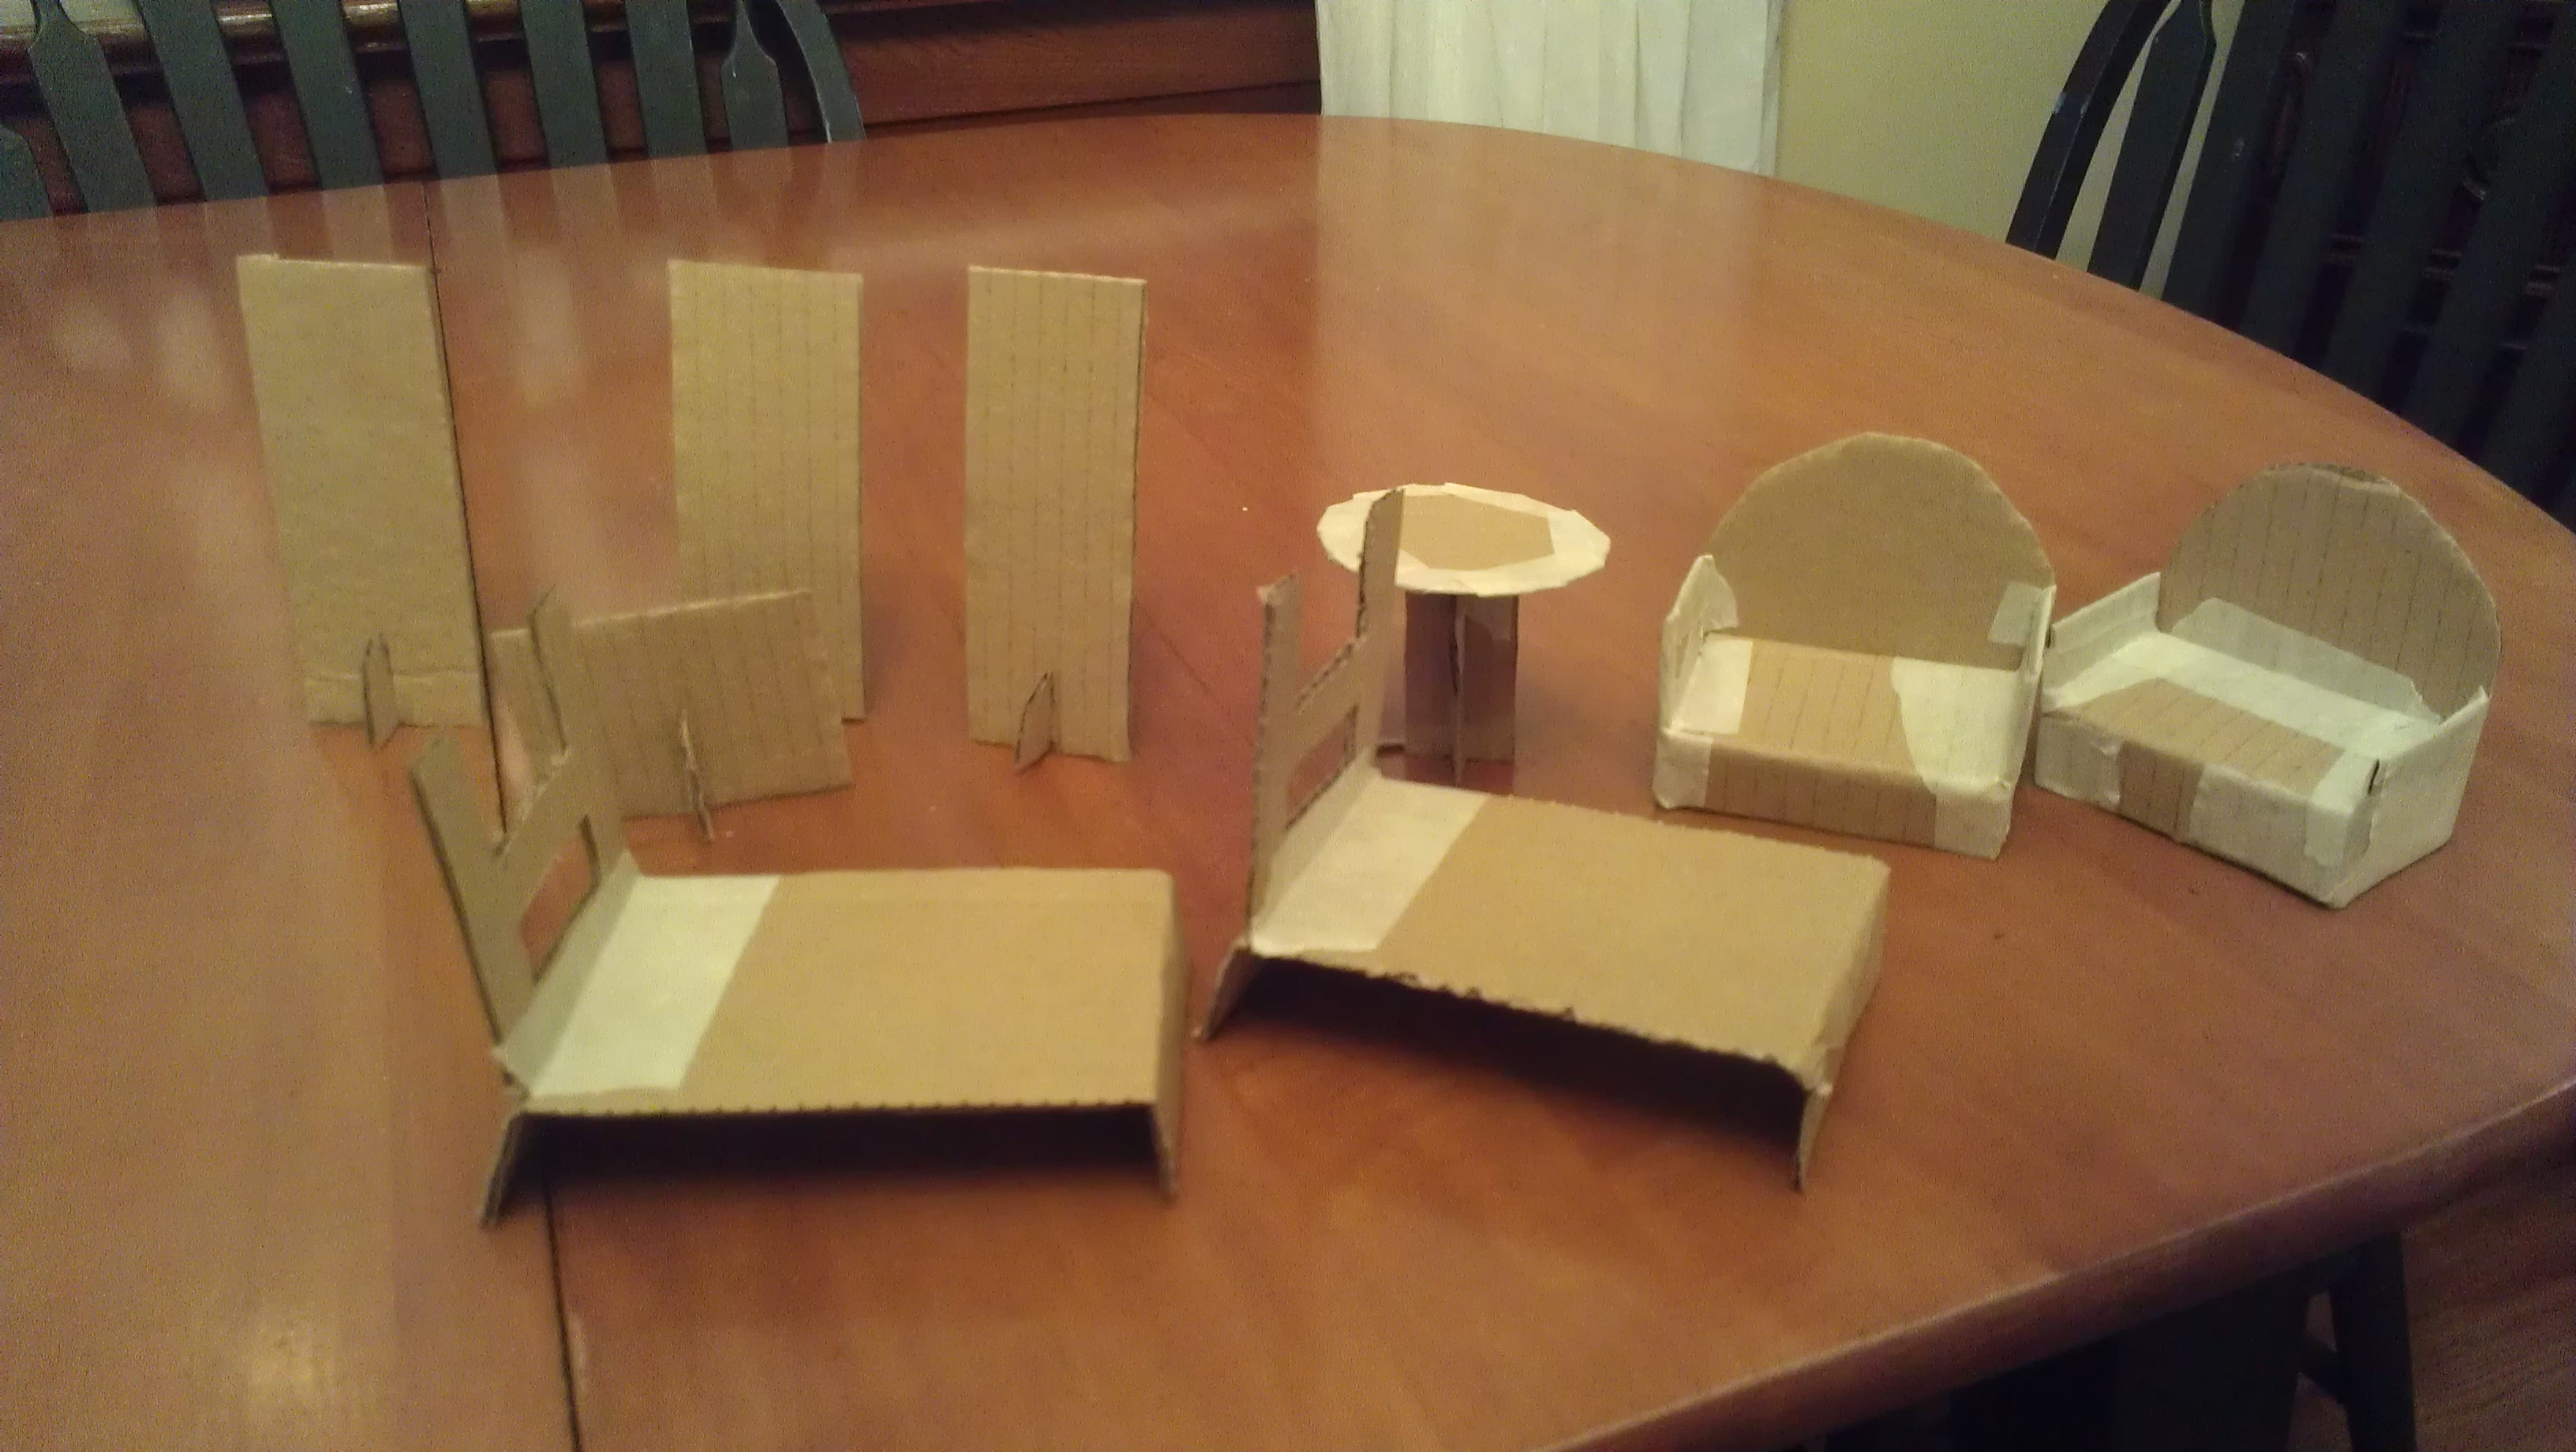 13 Cardboard Dollhouse Plans | Guide Patterns - Free Printable Dollhouse Furniture Patterns